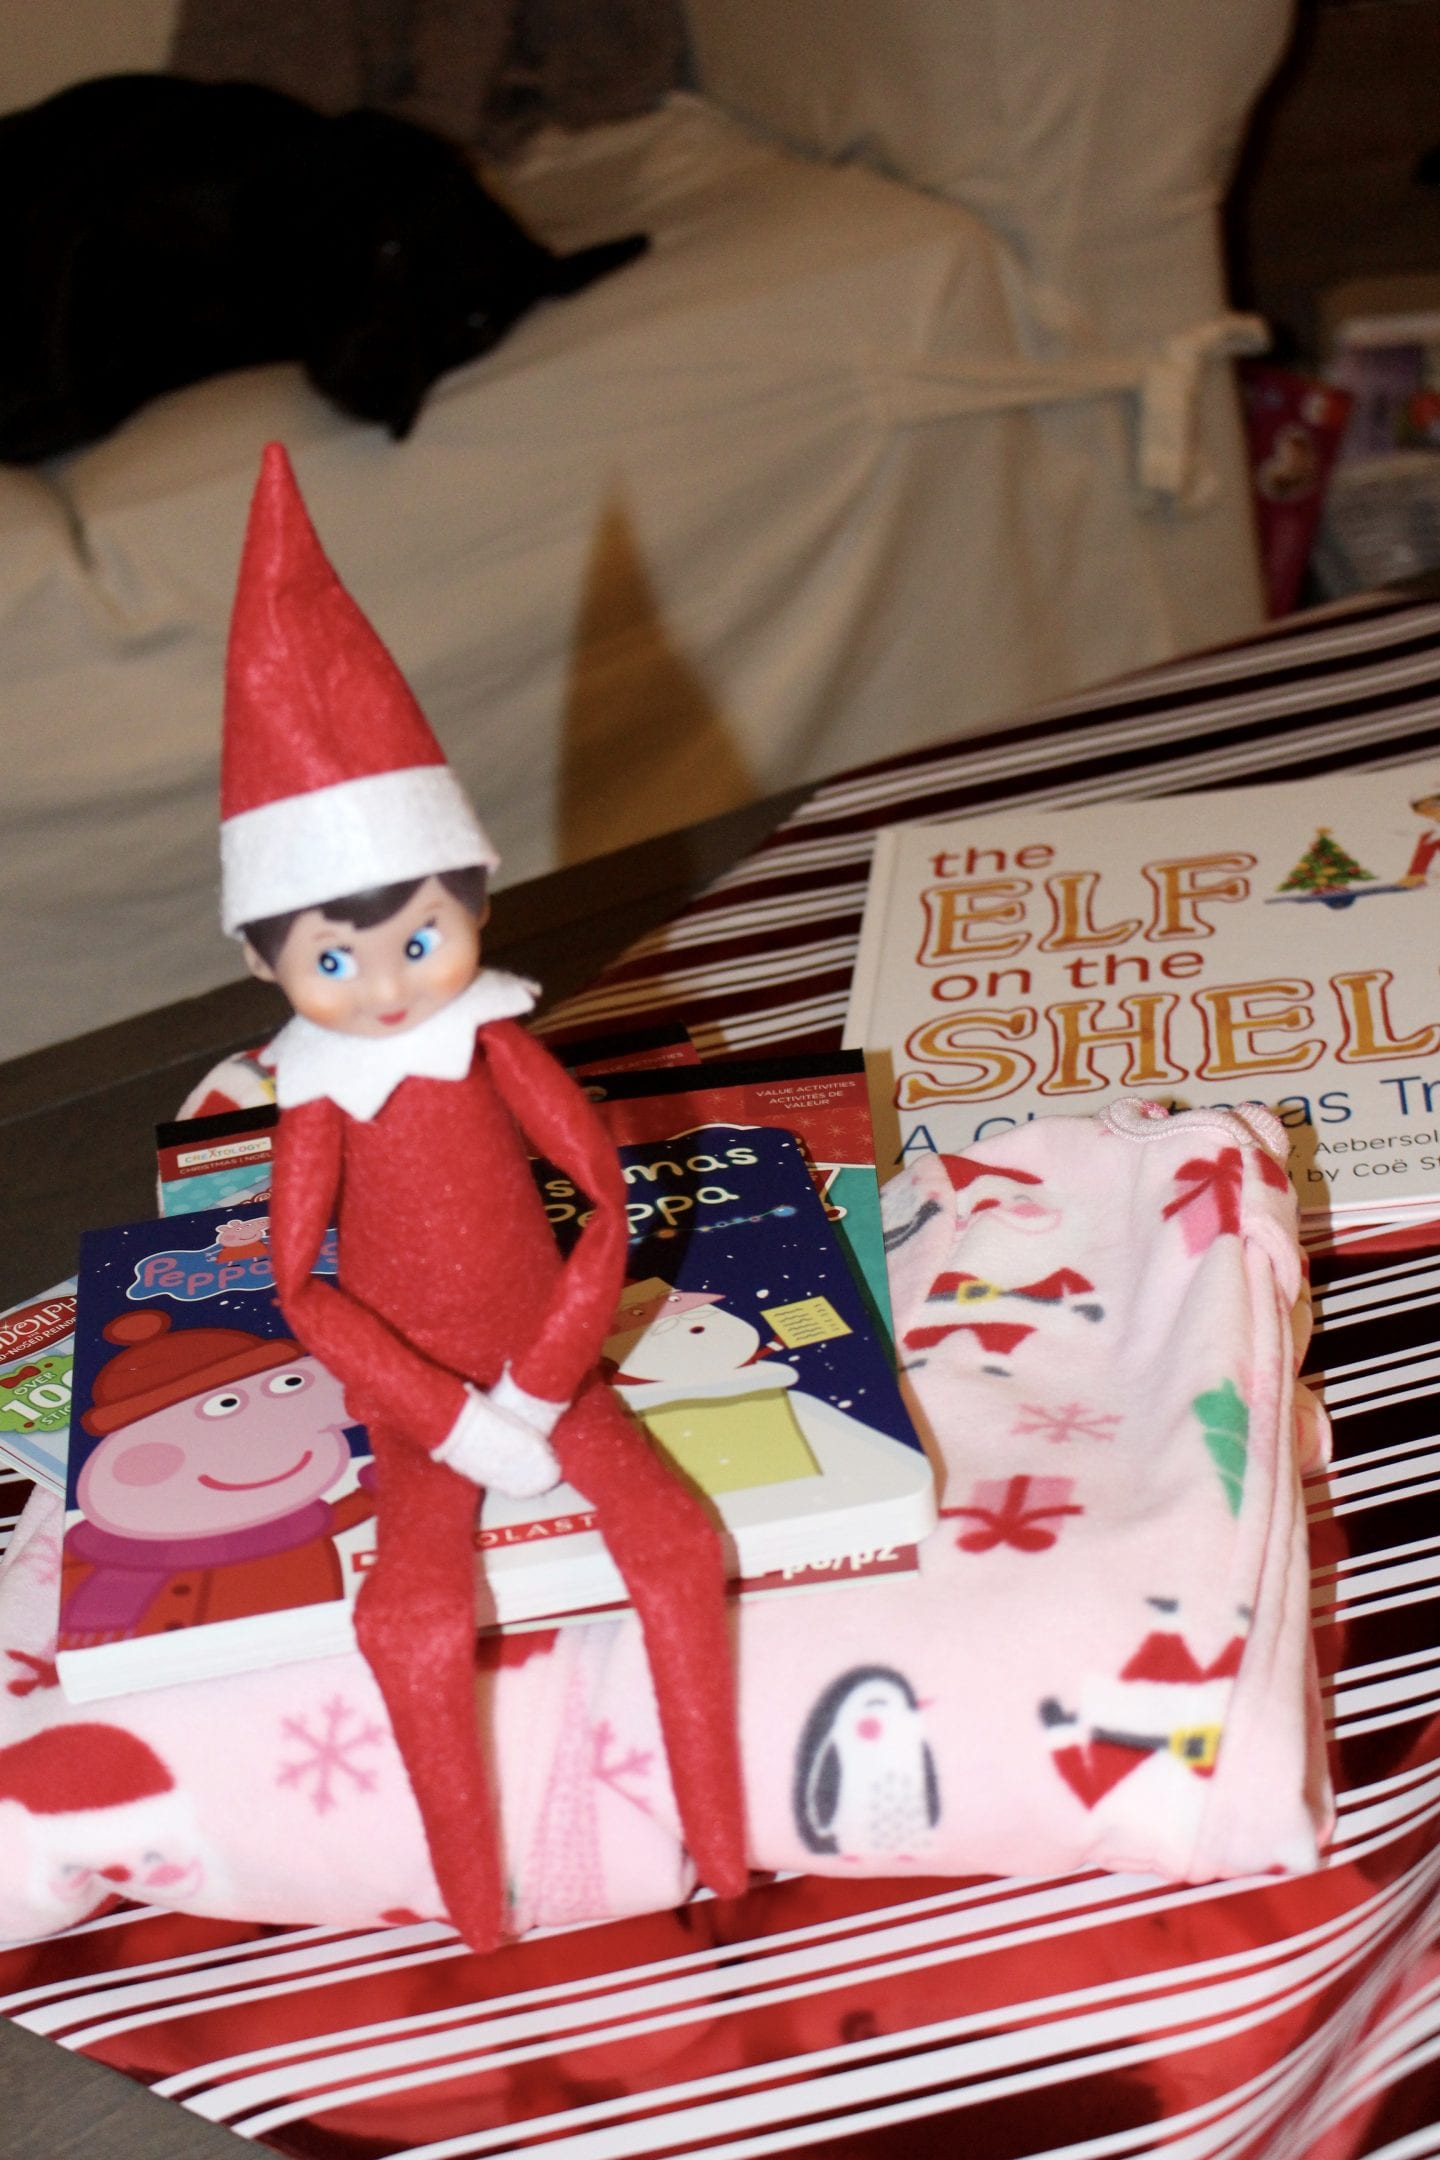 Elf on the Shelf Arrives with pajamas